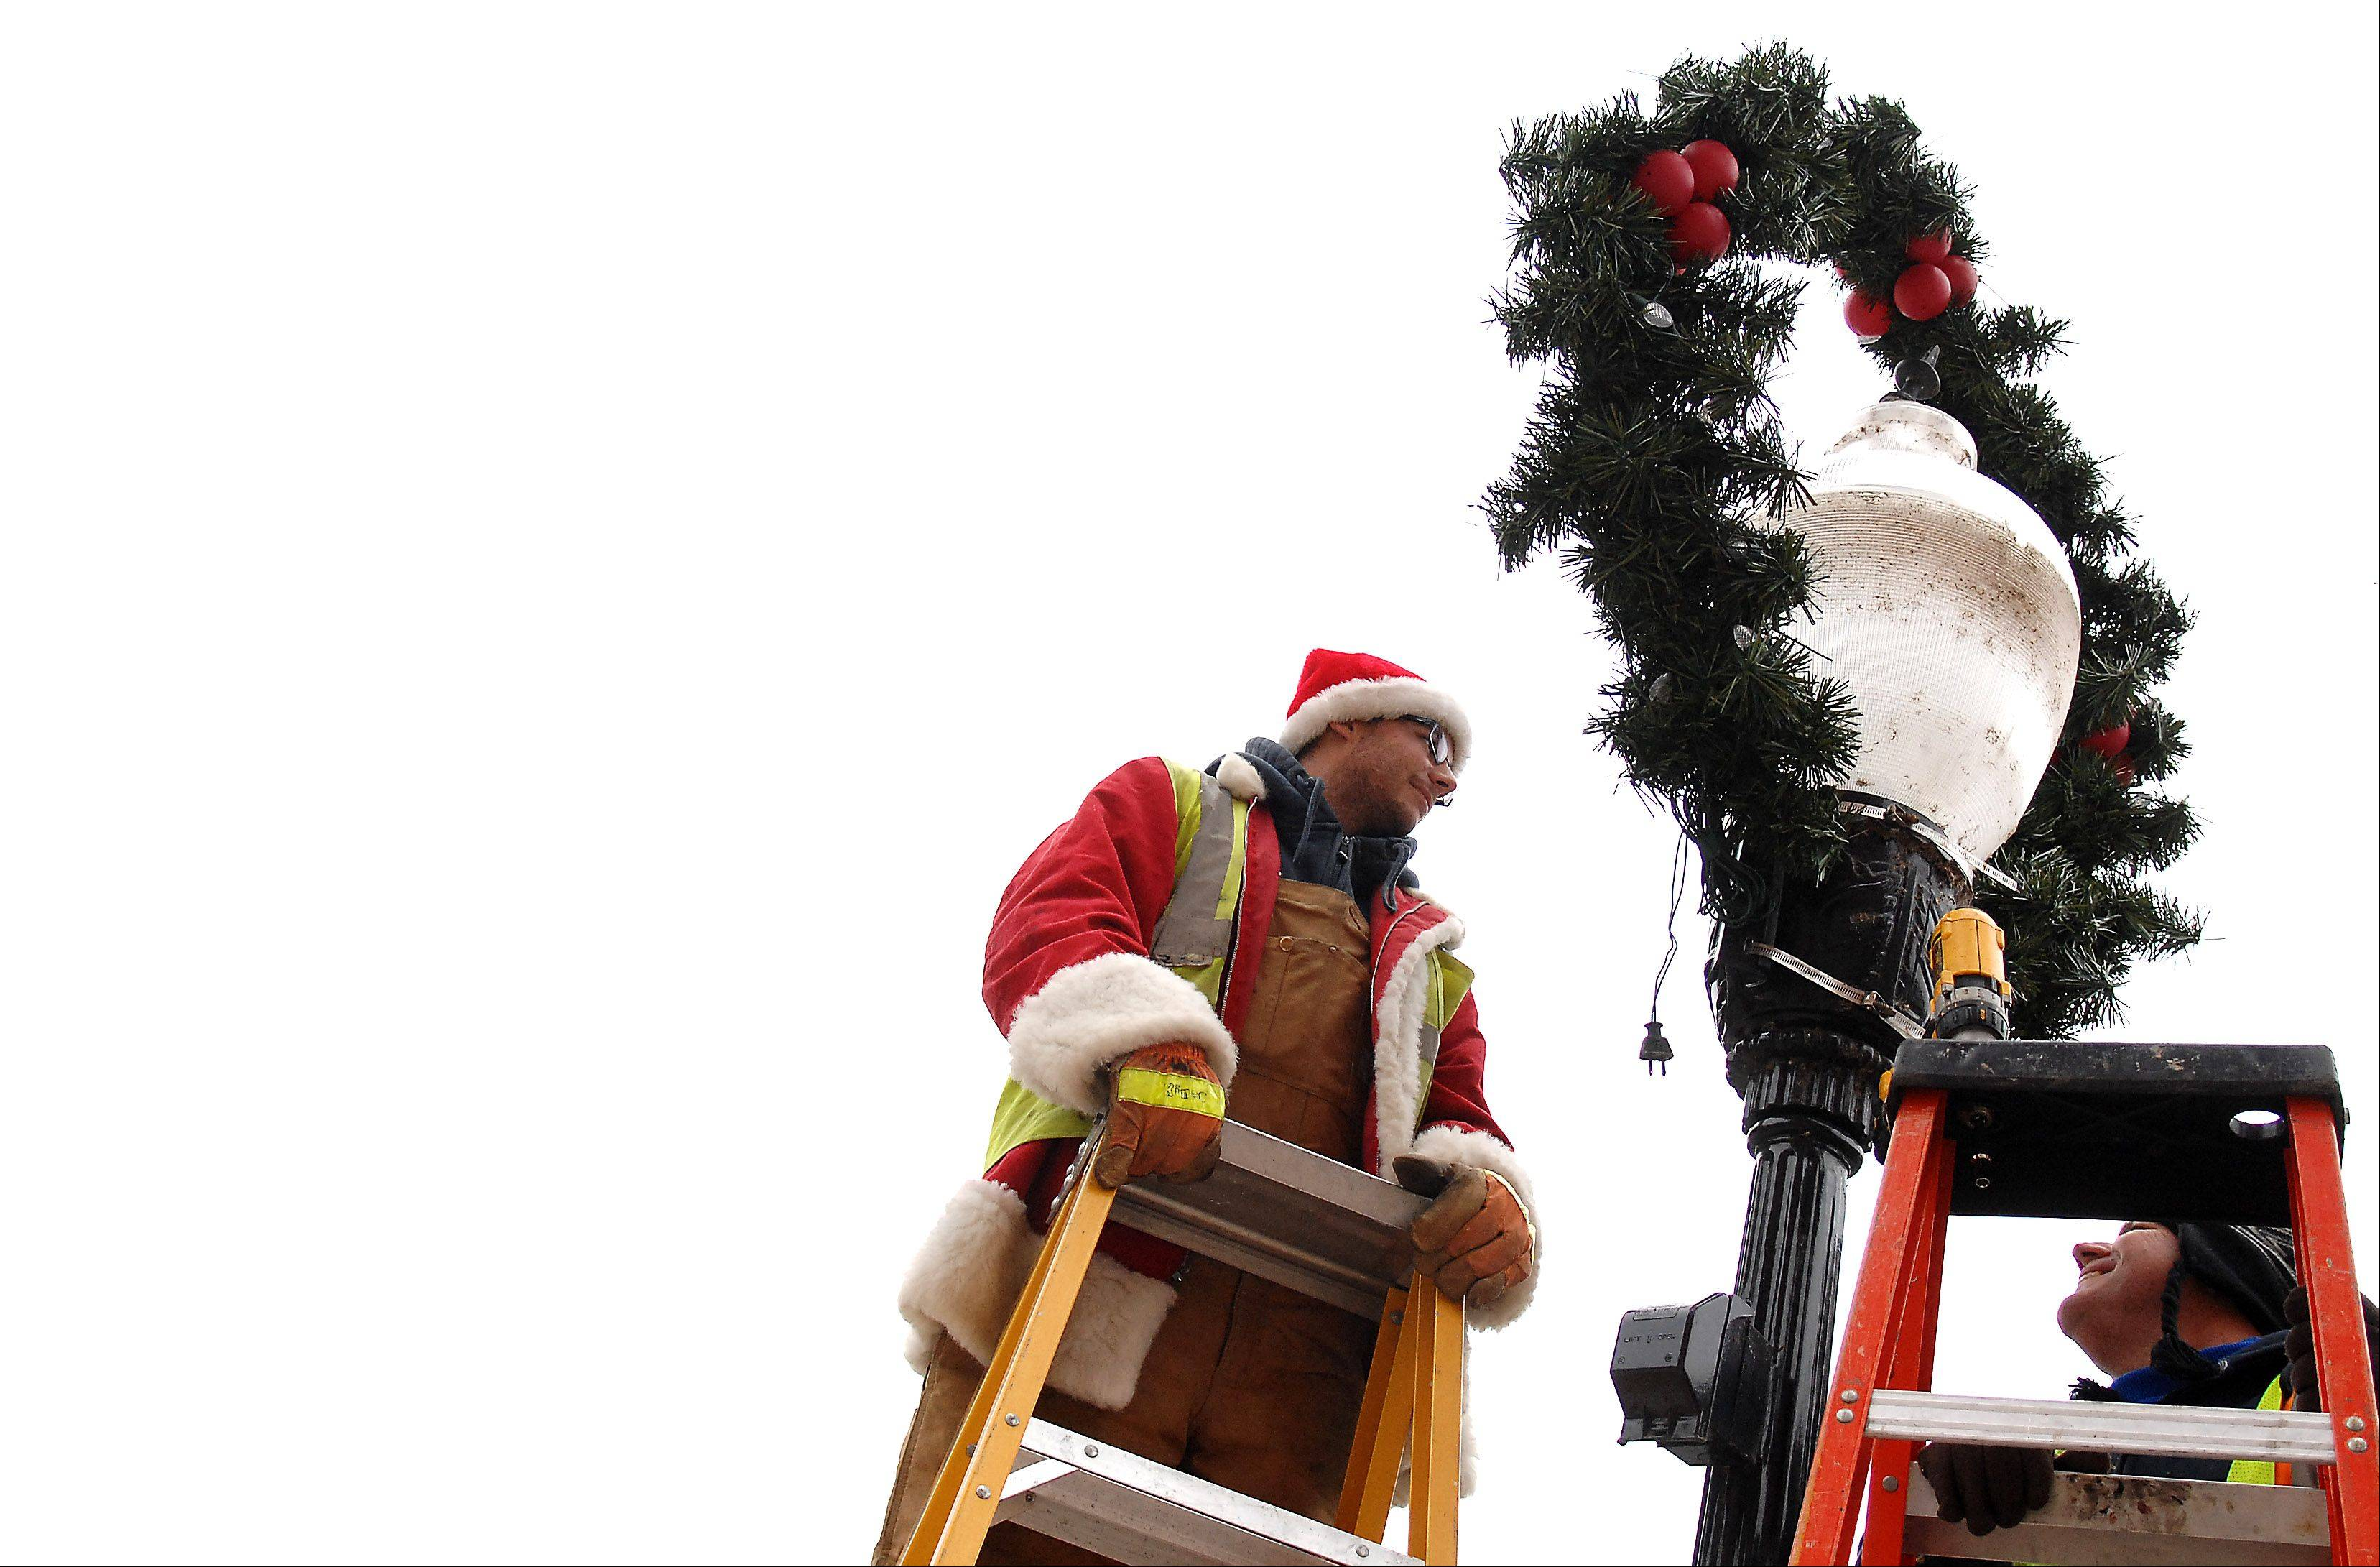 Village of Algonquin public works employee Matthew Seveska, dressed in a leftover Santa coat and hat, and Mike Schaffter put up wreaths Tuesday morning throughout the downtown area. They're decorating 18 light poles total with wreaths, garland and bows.